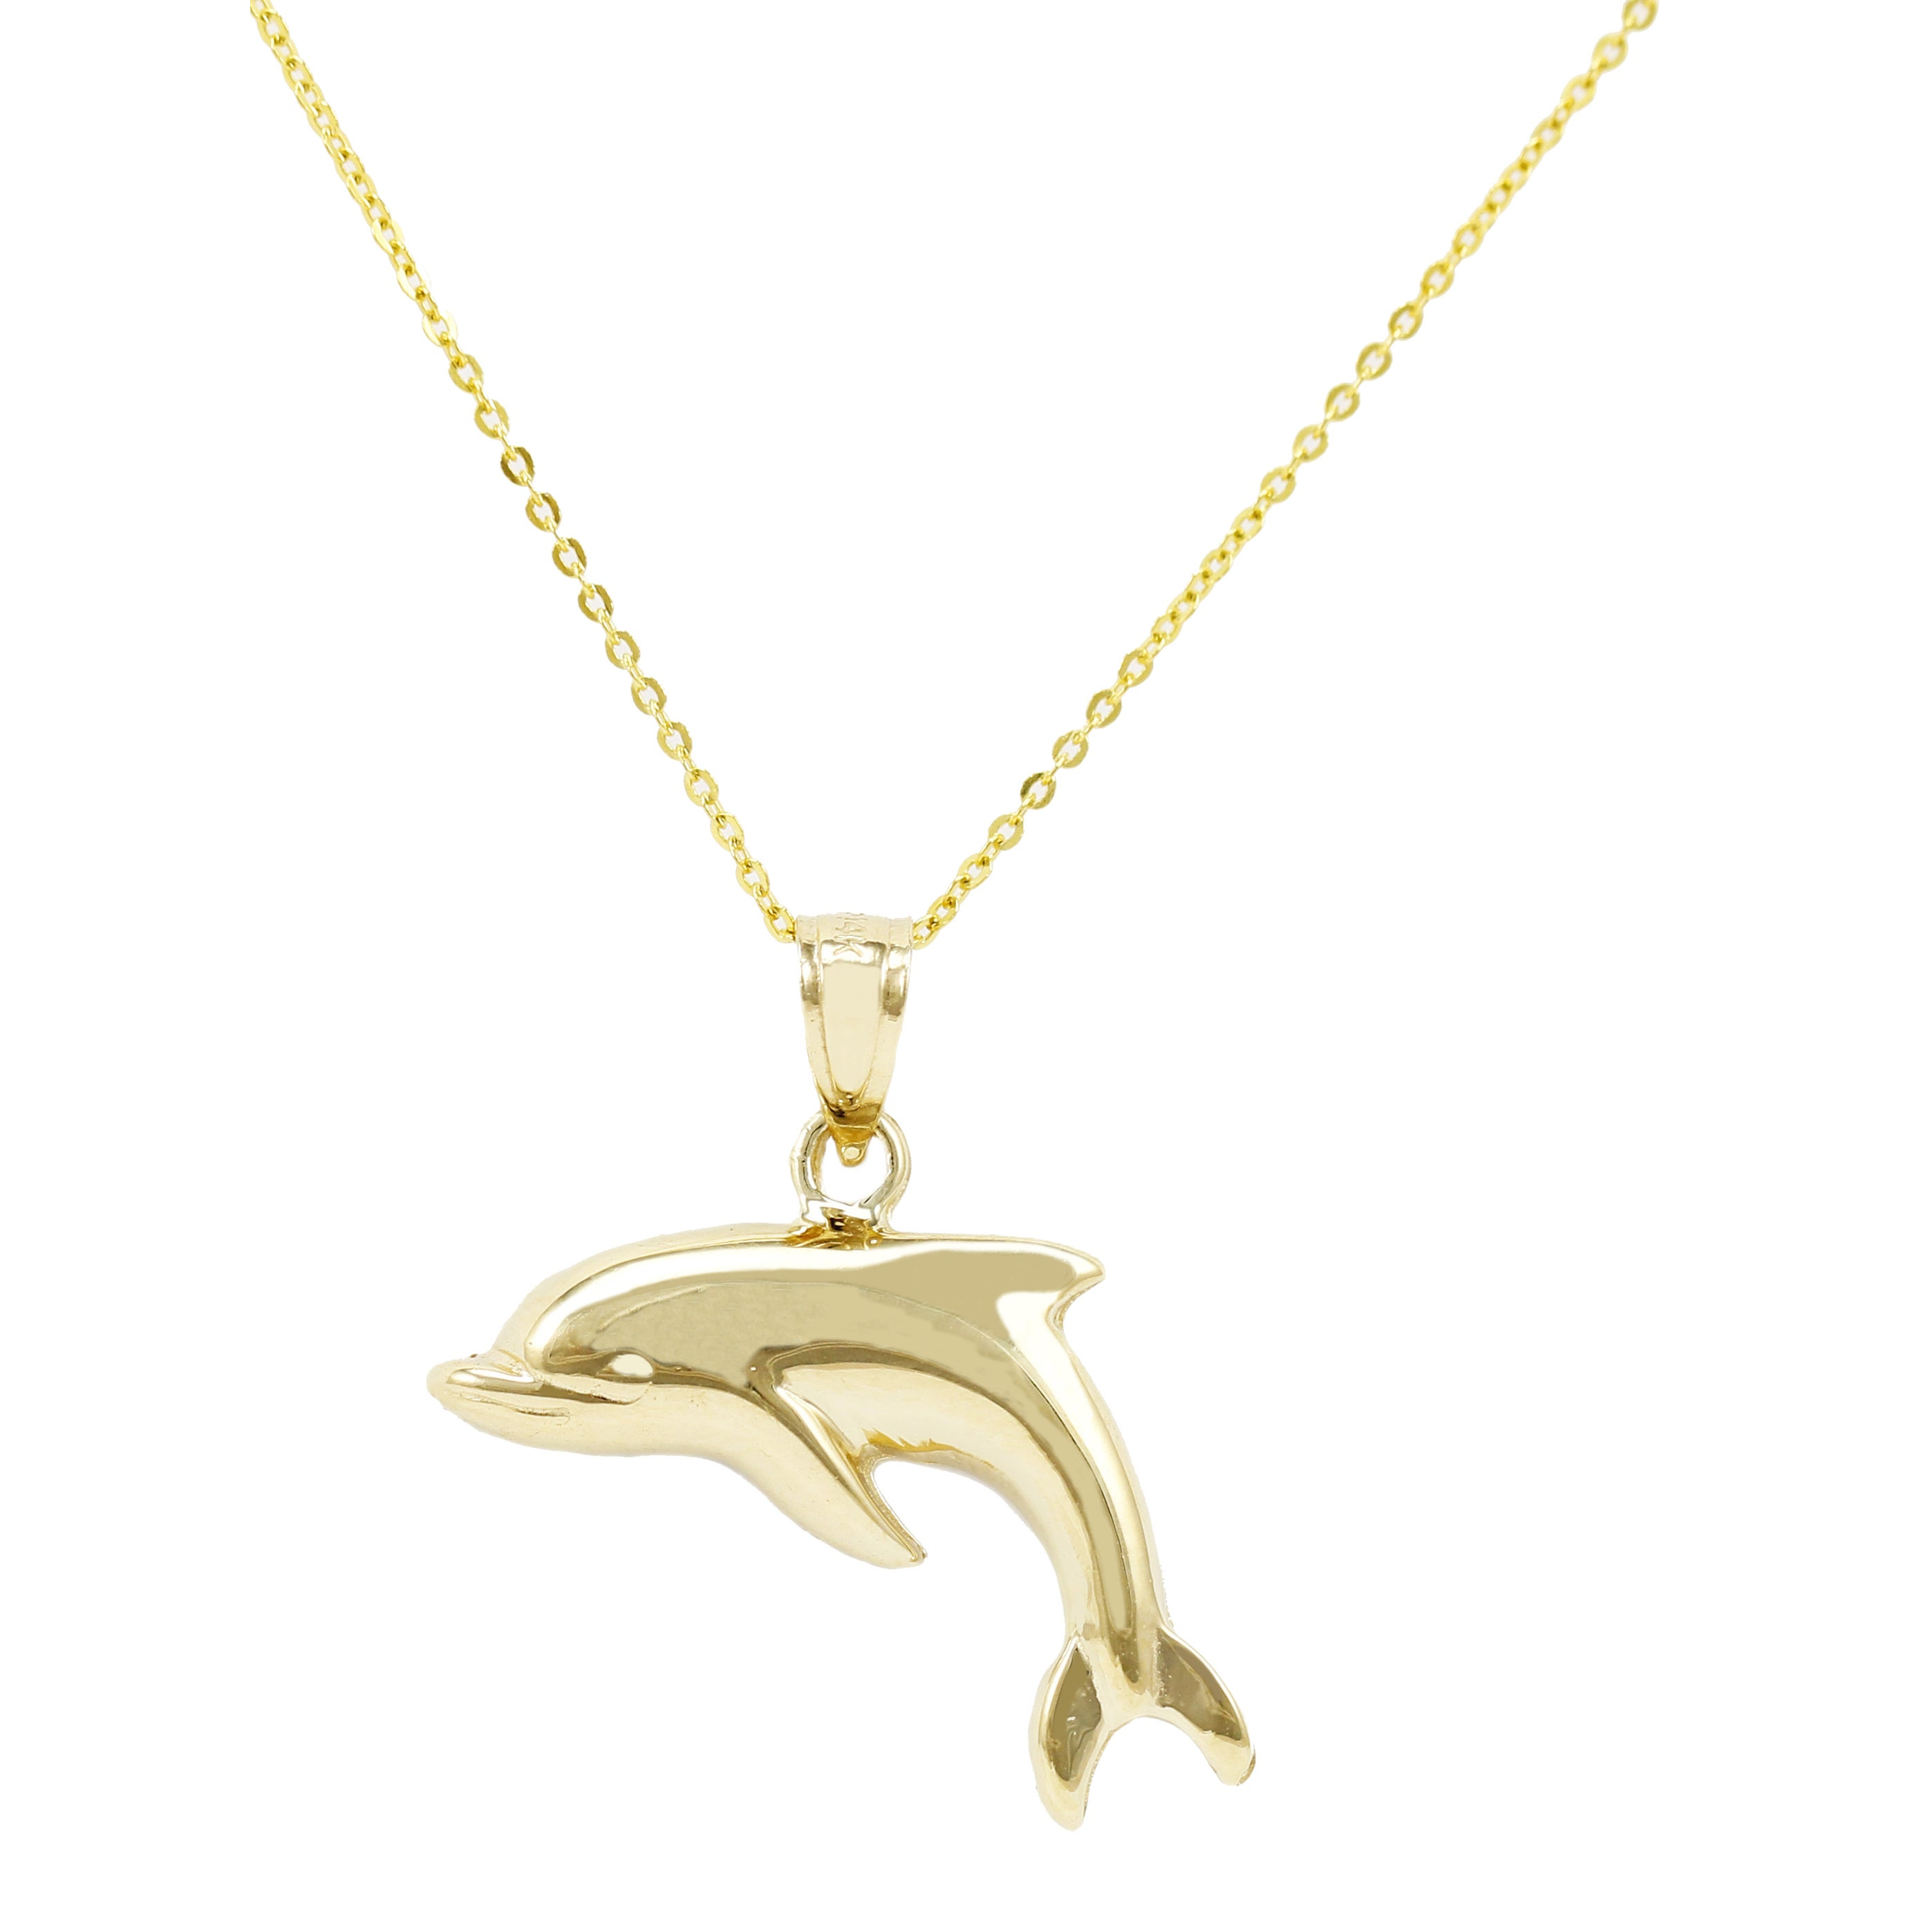 14k White And Yellow Gold Dolphin Pendant Charm